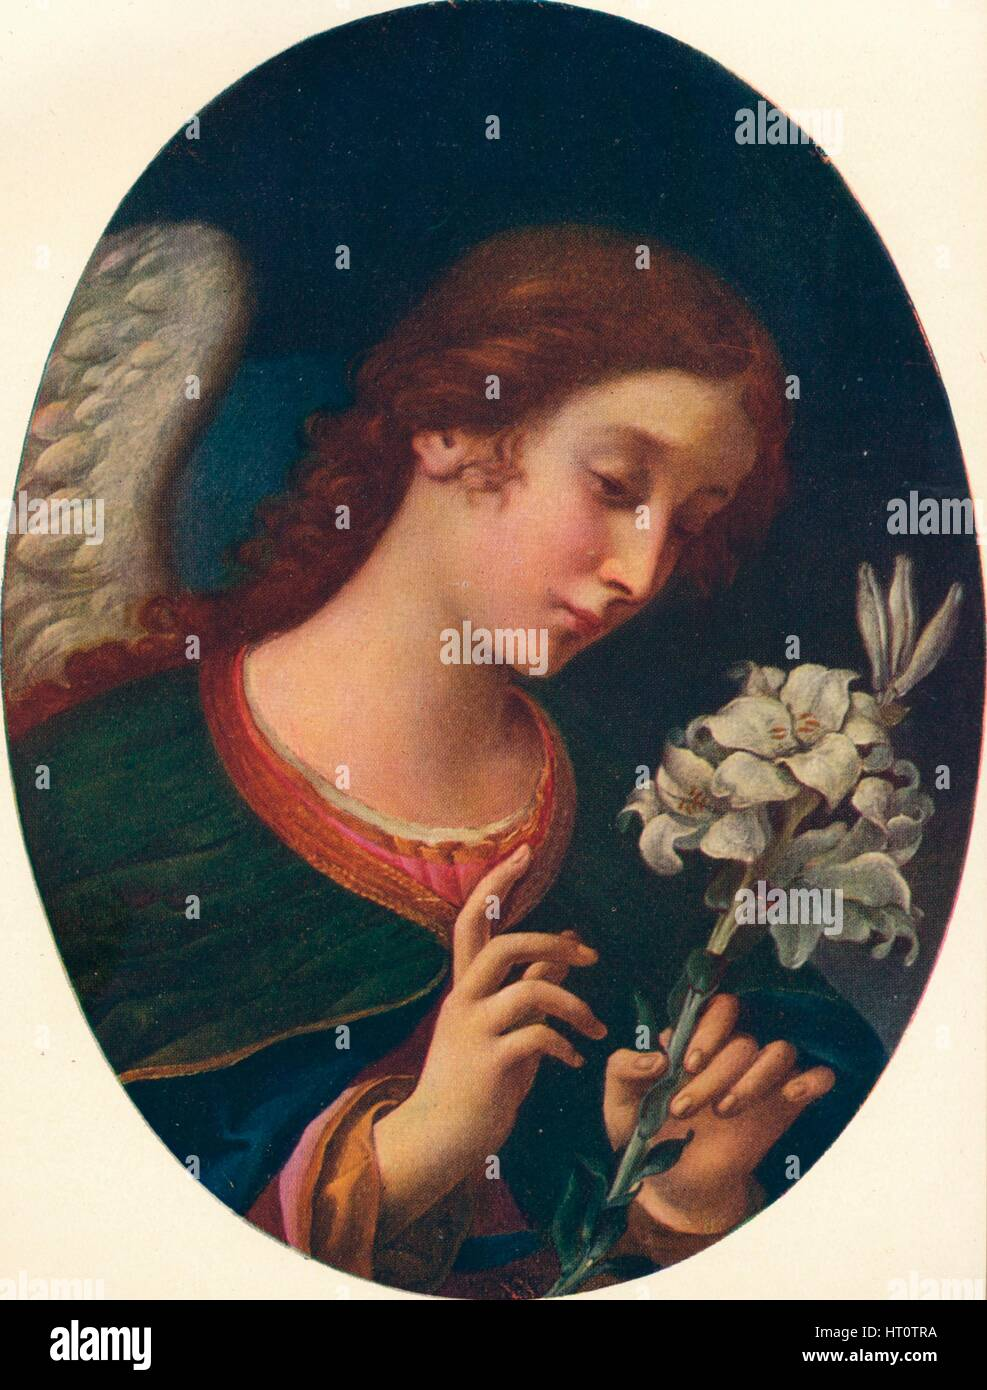 'Angel of the Annunciation', 17th century. Artist: Carlo Dolci. - Stock Image